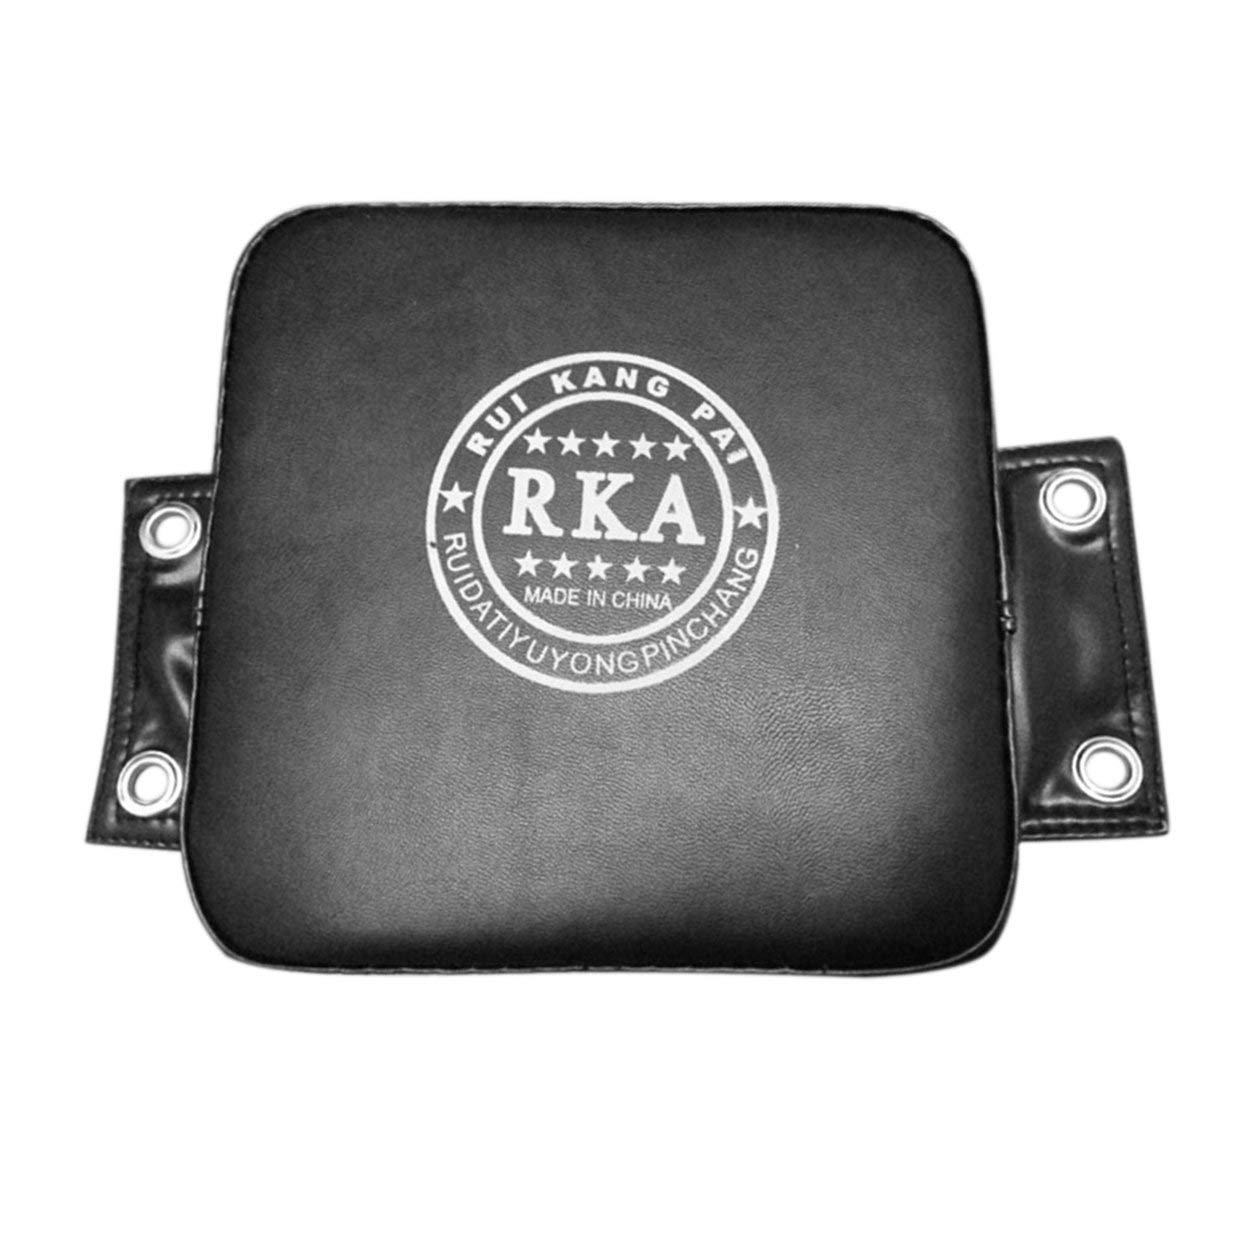 Qewmsg Wall Pad Fitness Square Focus Target Guantes Marciales Boxeo Kick Pad Training